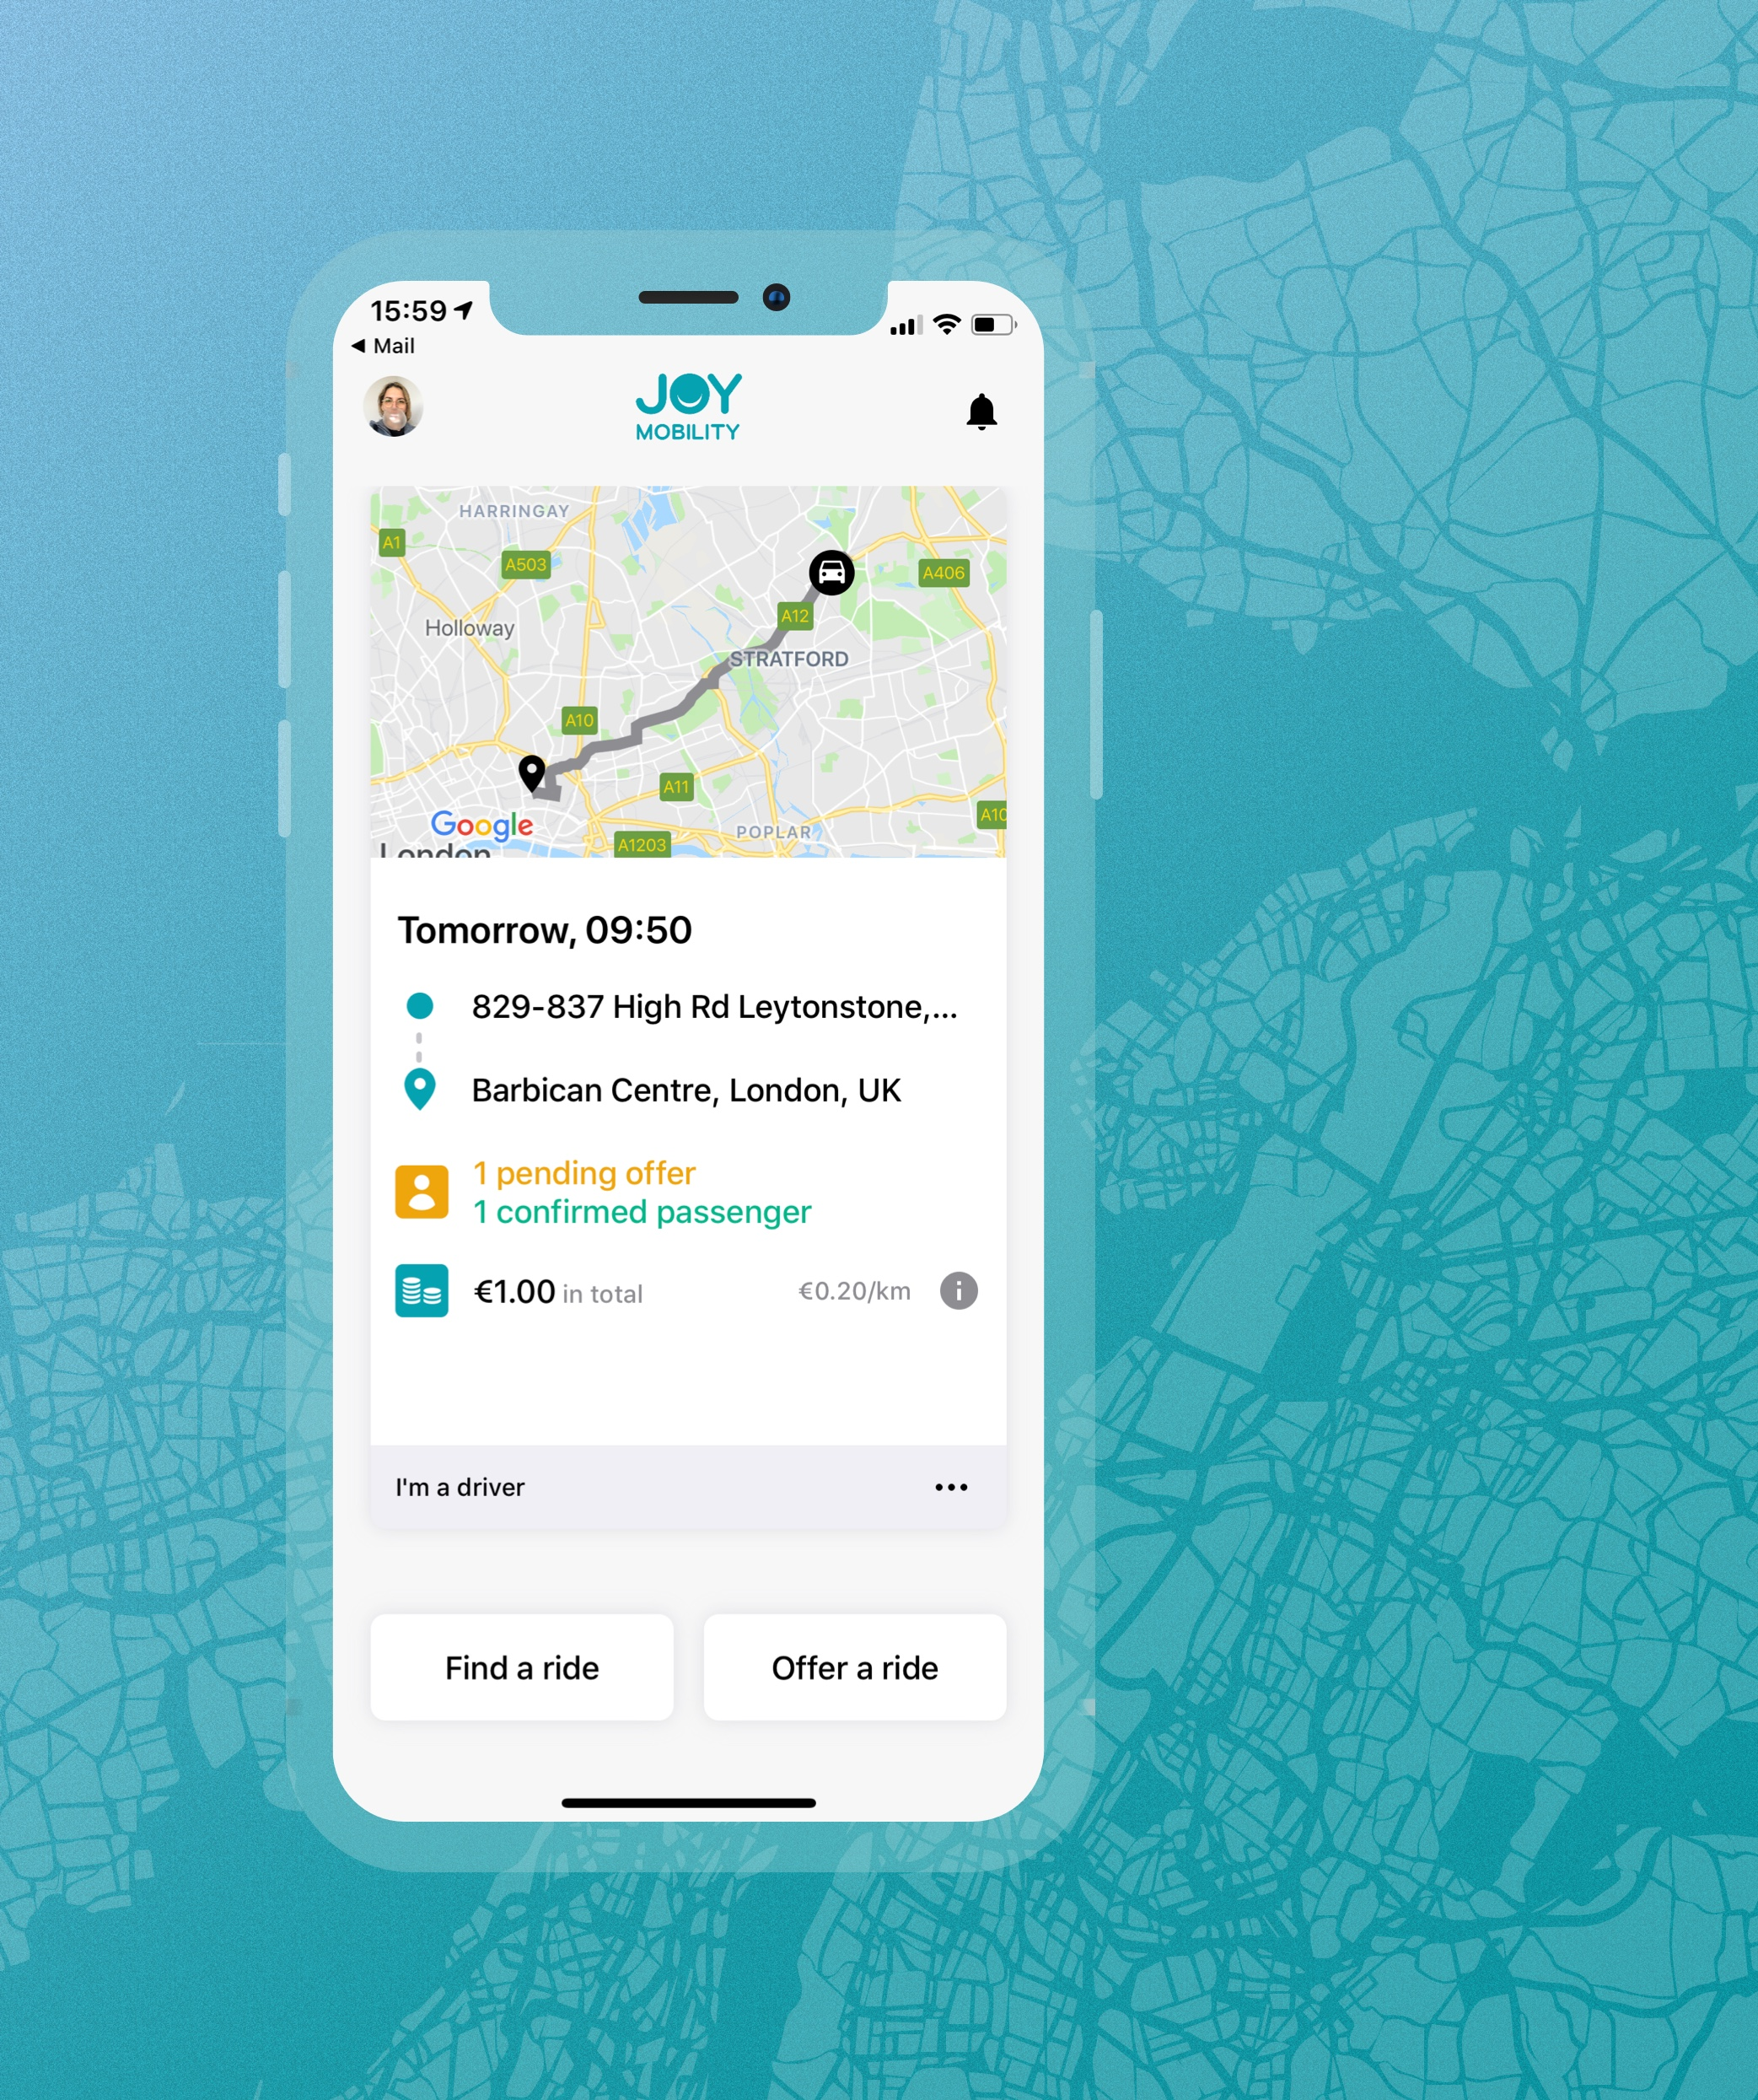 For companies - Many people have to drive to work and they usually do it alone. What if rides were shared? It's an advantage for both the drivers and passengers. Your company will benefit too!Learn more ➝